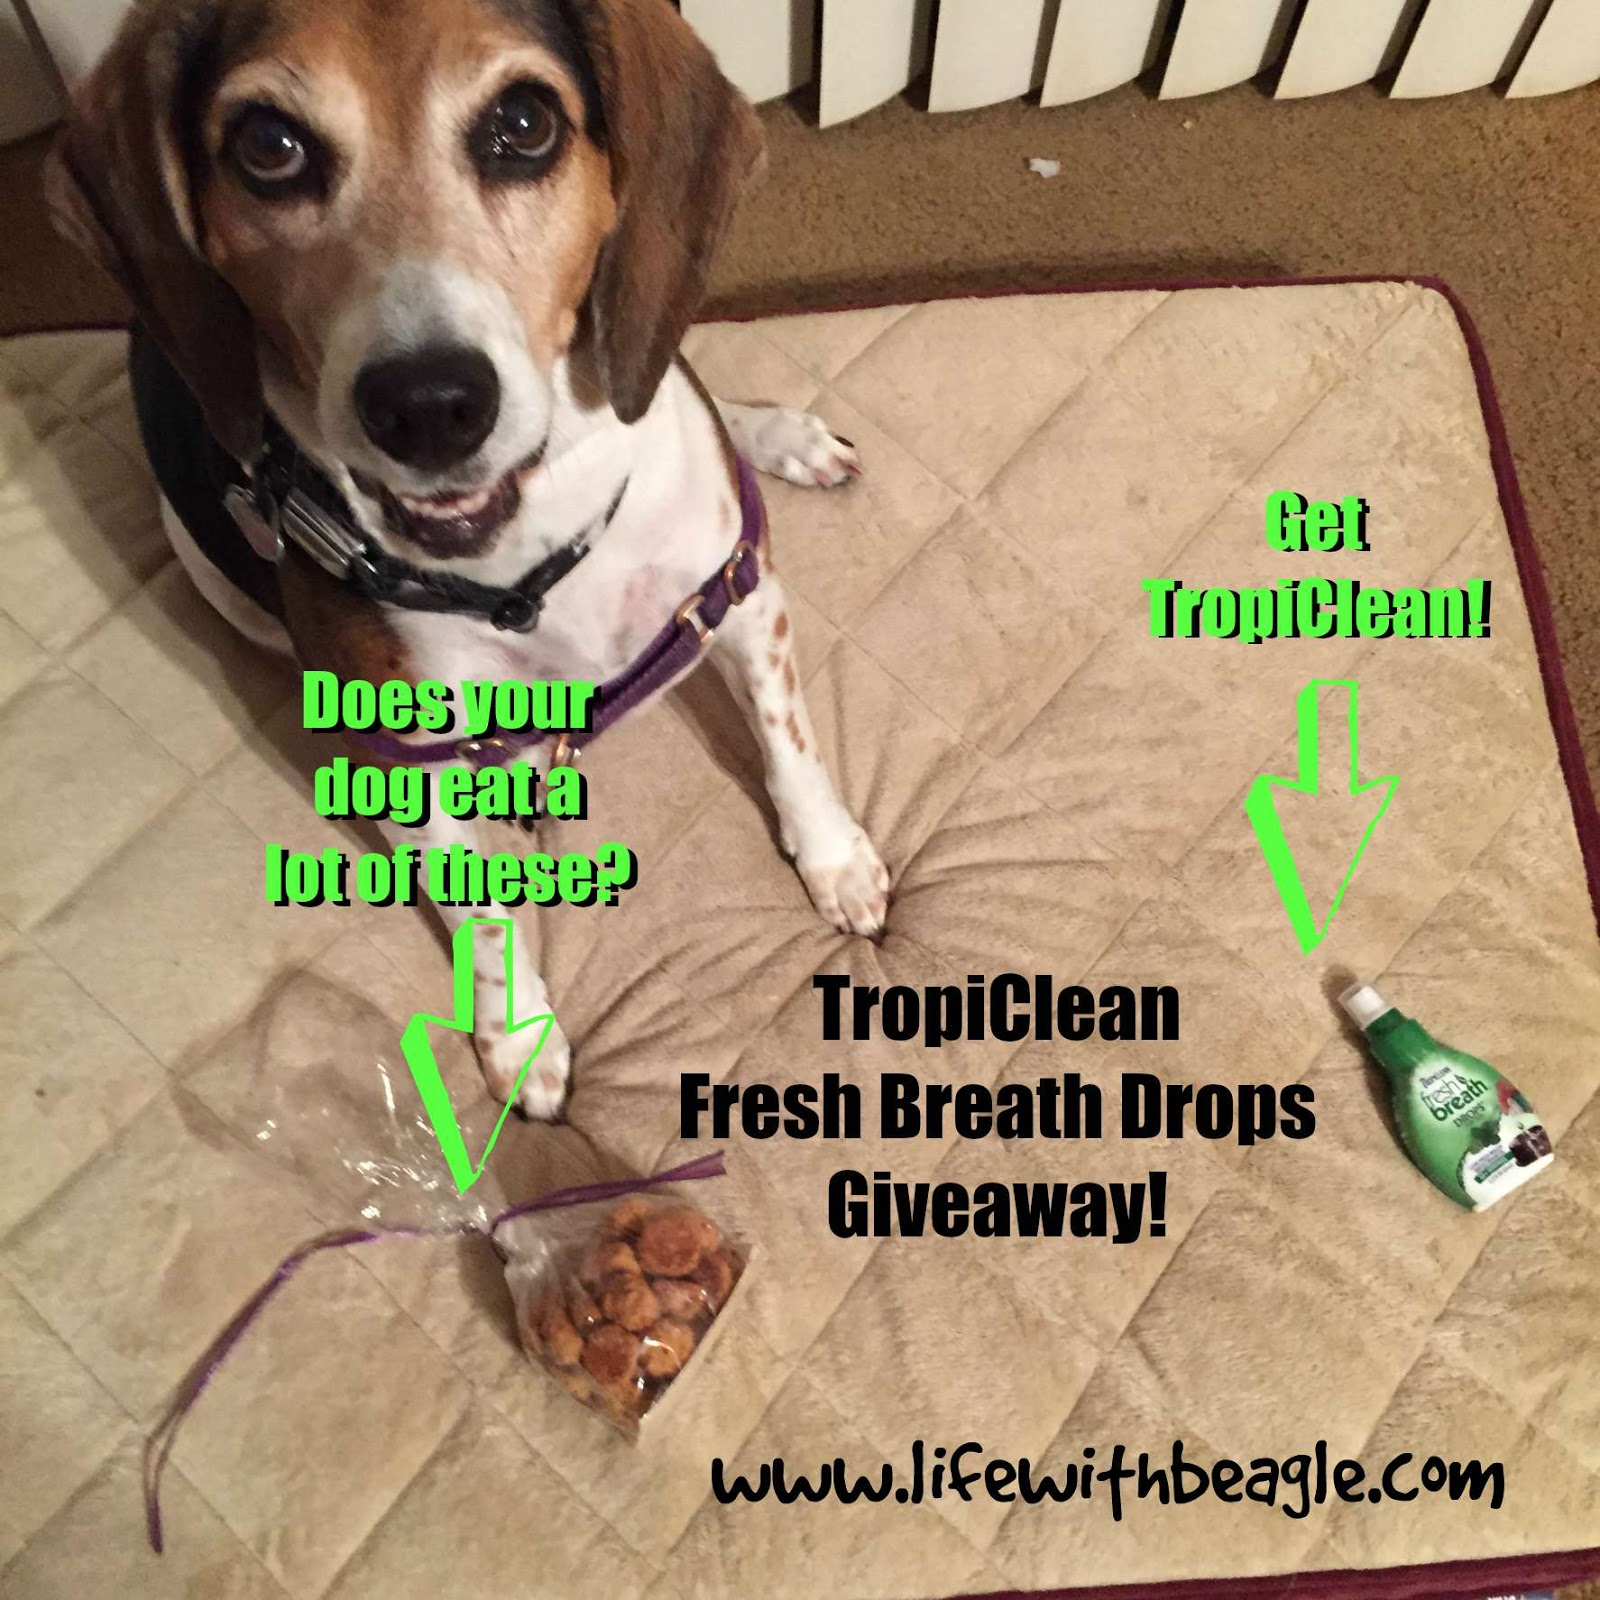 Beagle get your dog s breath tropicleanfresh breath drops giveaway